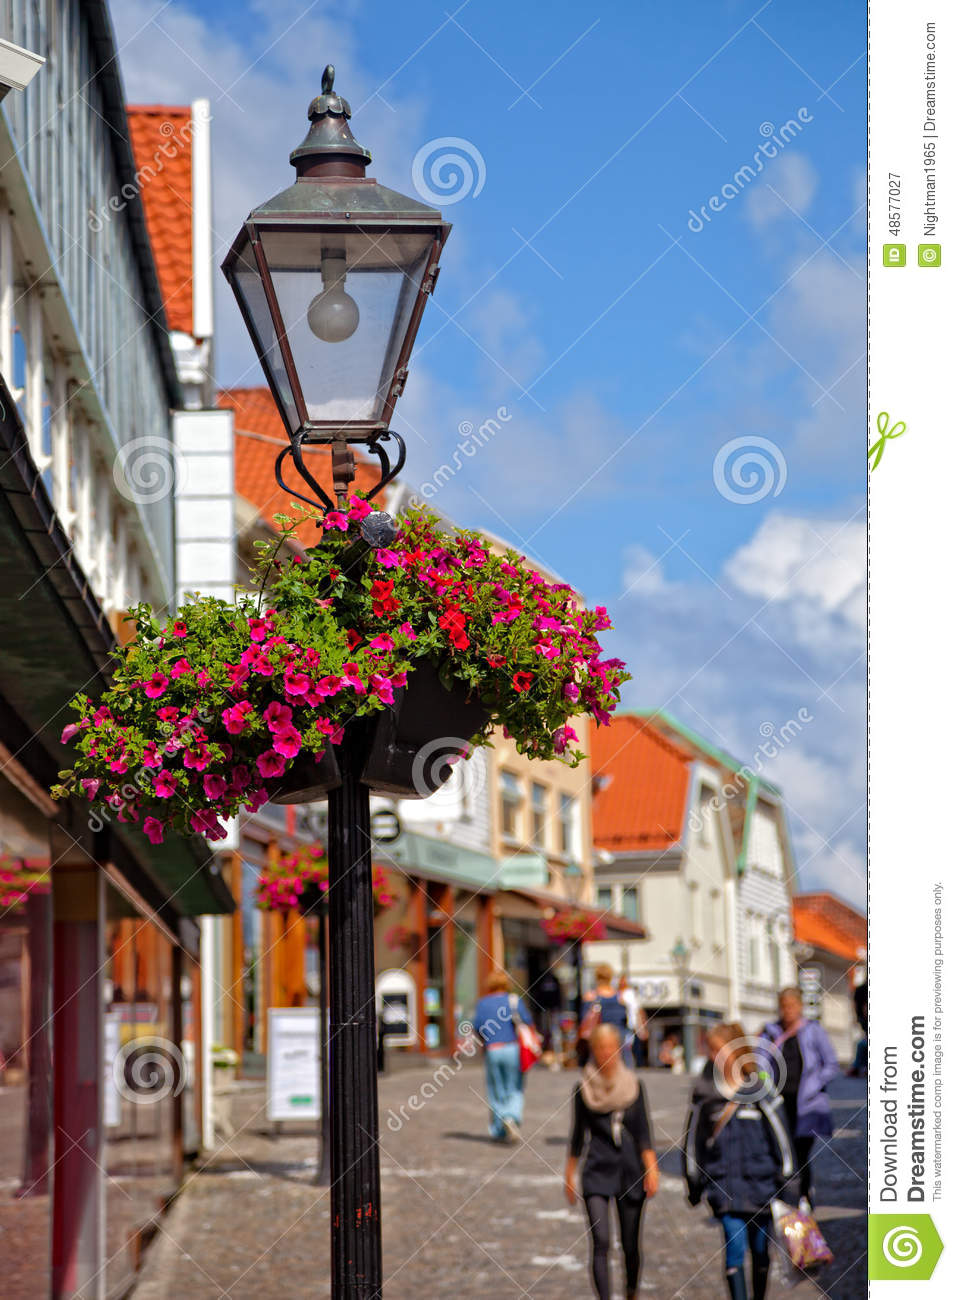 Lamp Post With Flower Basket Stock Photo Image 48577027